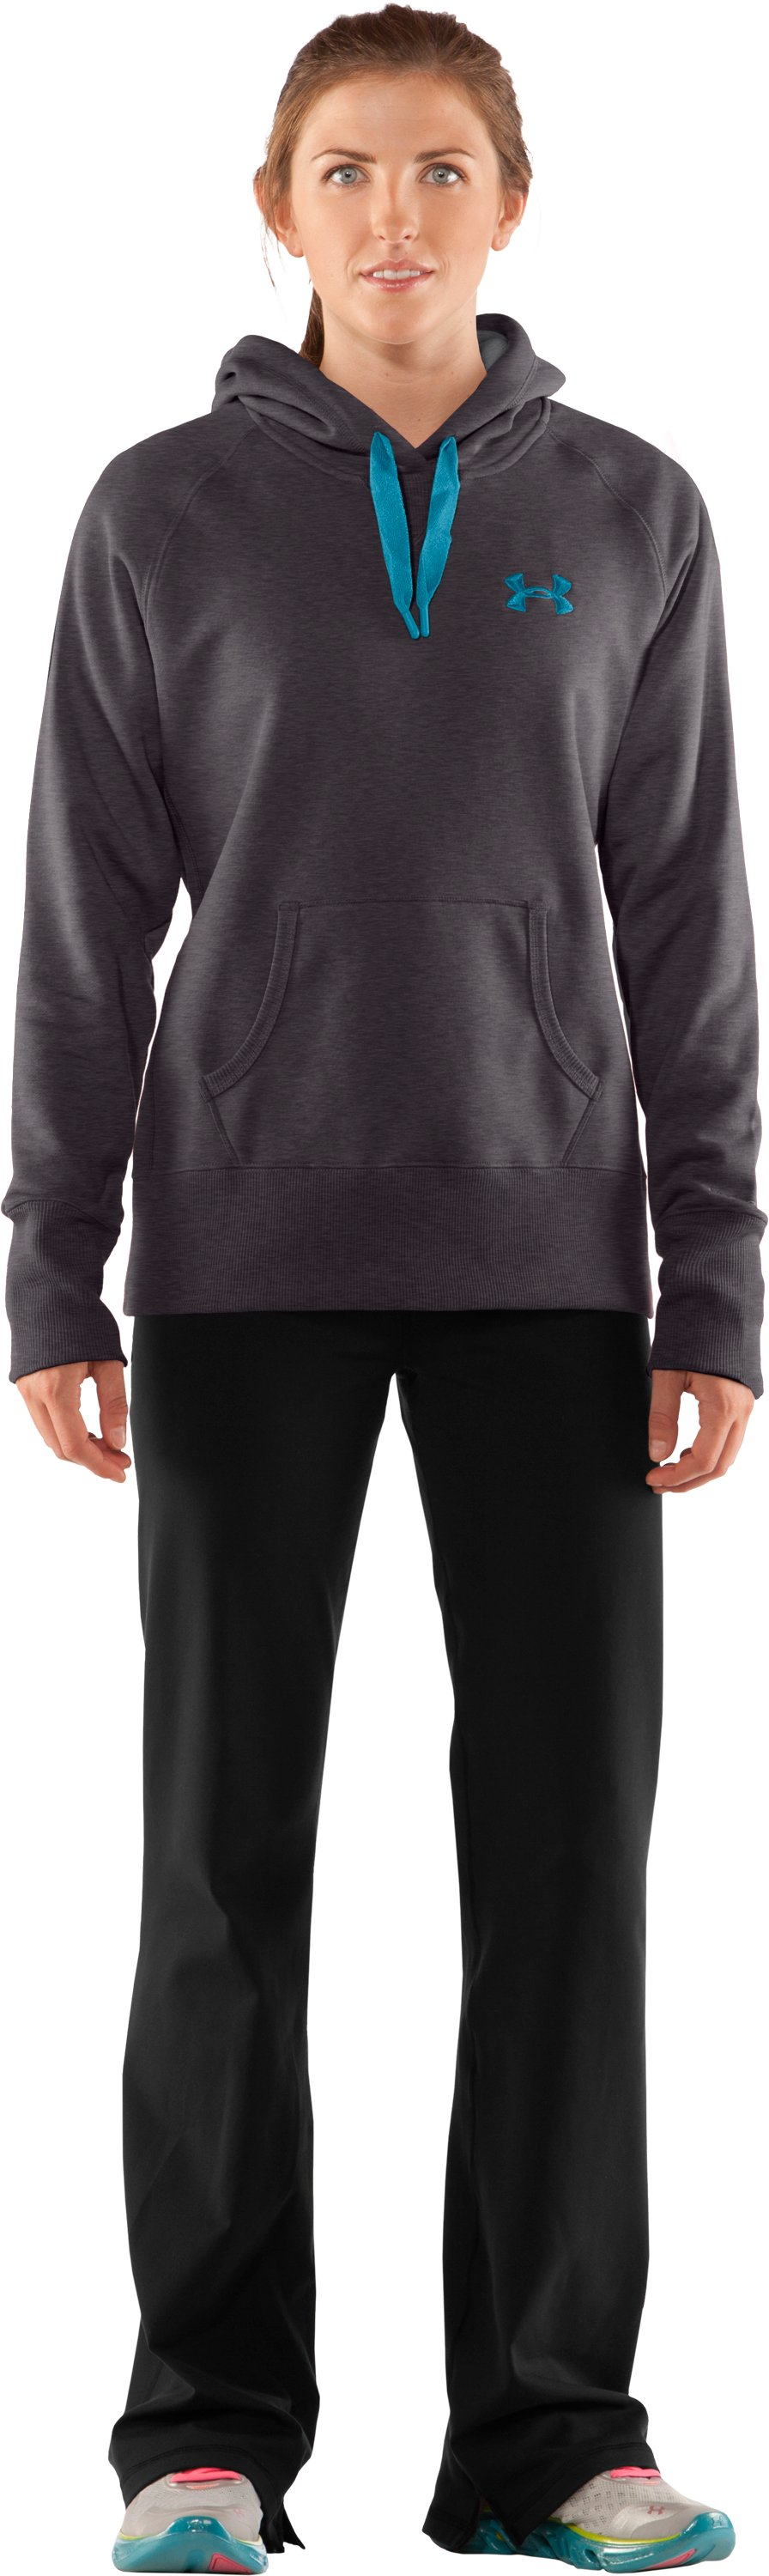 Women's Charged Cotton® Storm Hoodie, Carbon Heather